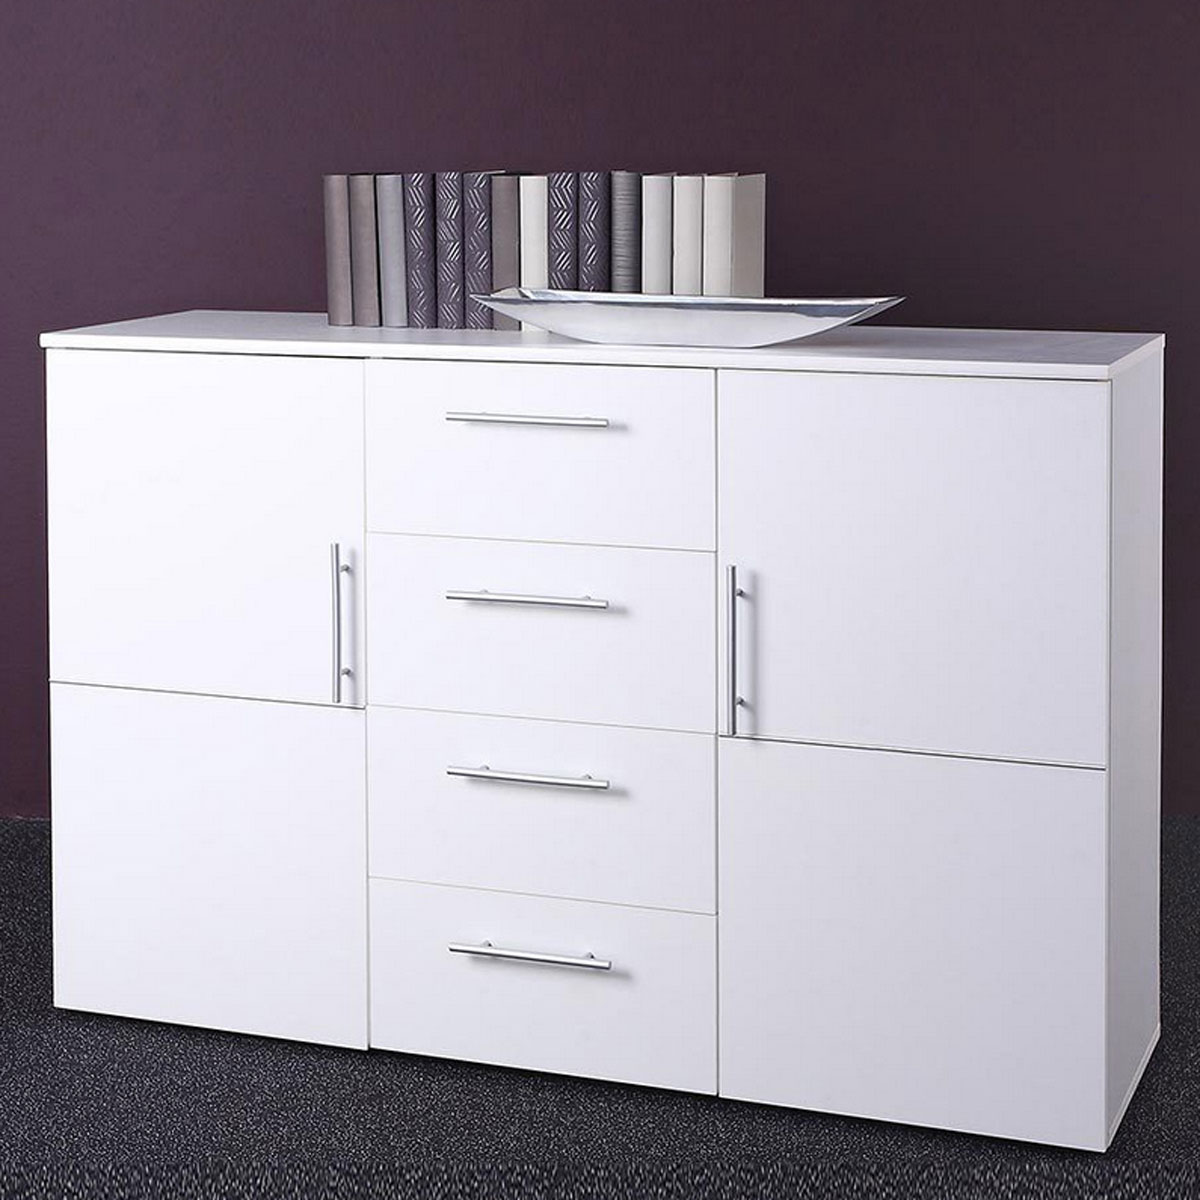 sideboard punto 4 kommode wei 2 t ren 4 schubk sten ebay. Black Bedroom Furniture Sets. Home Design Ideas